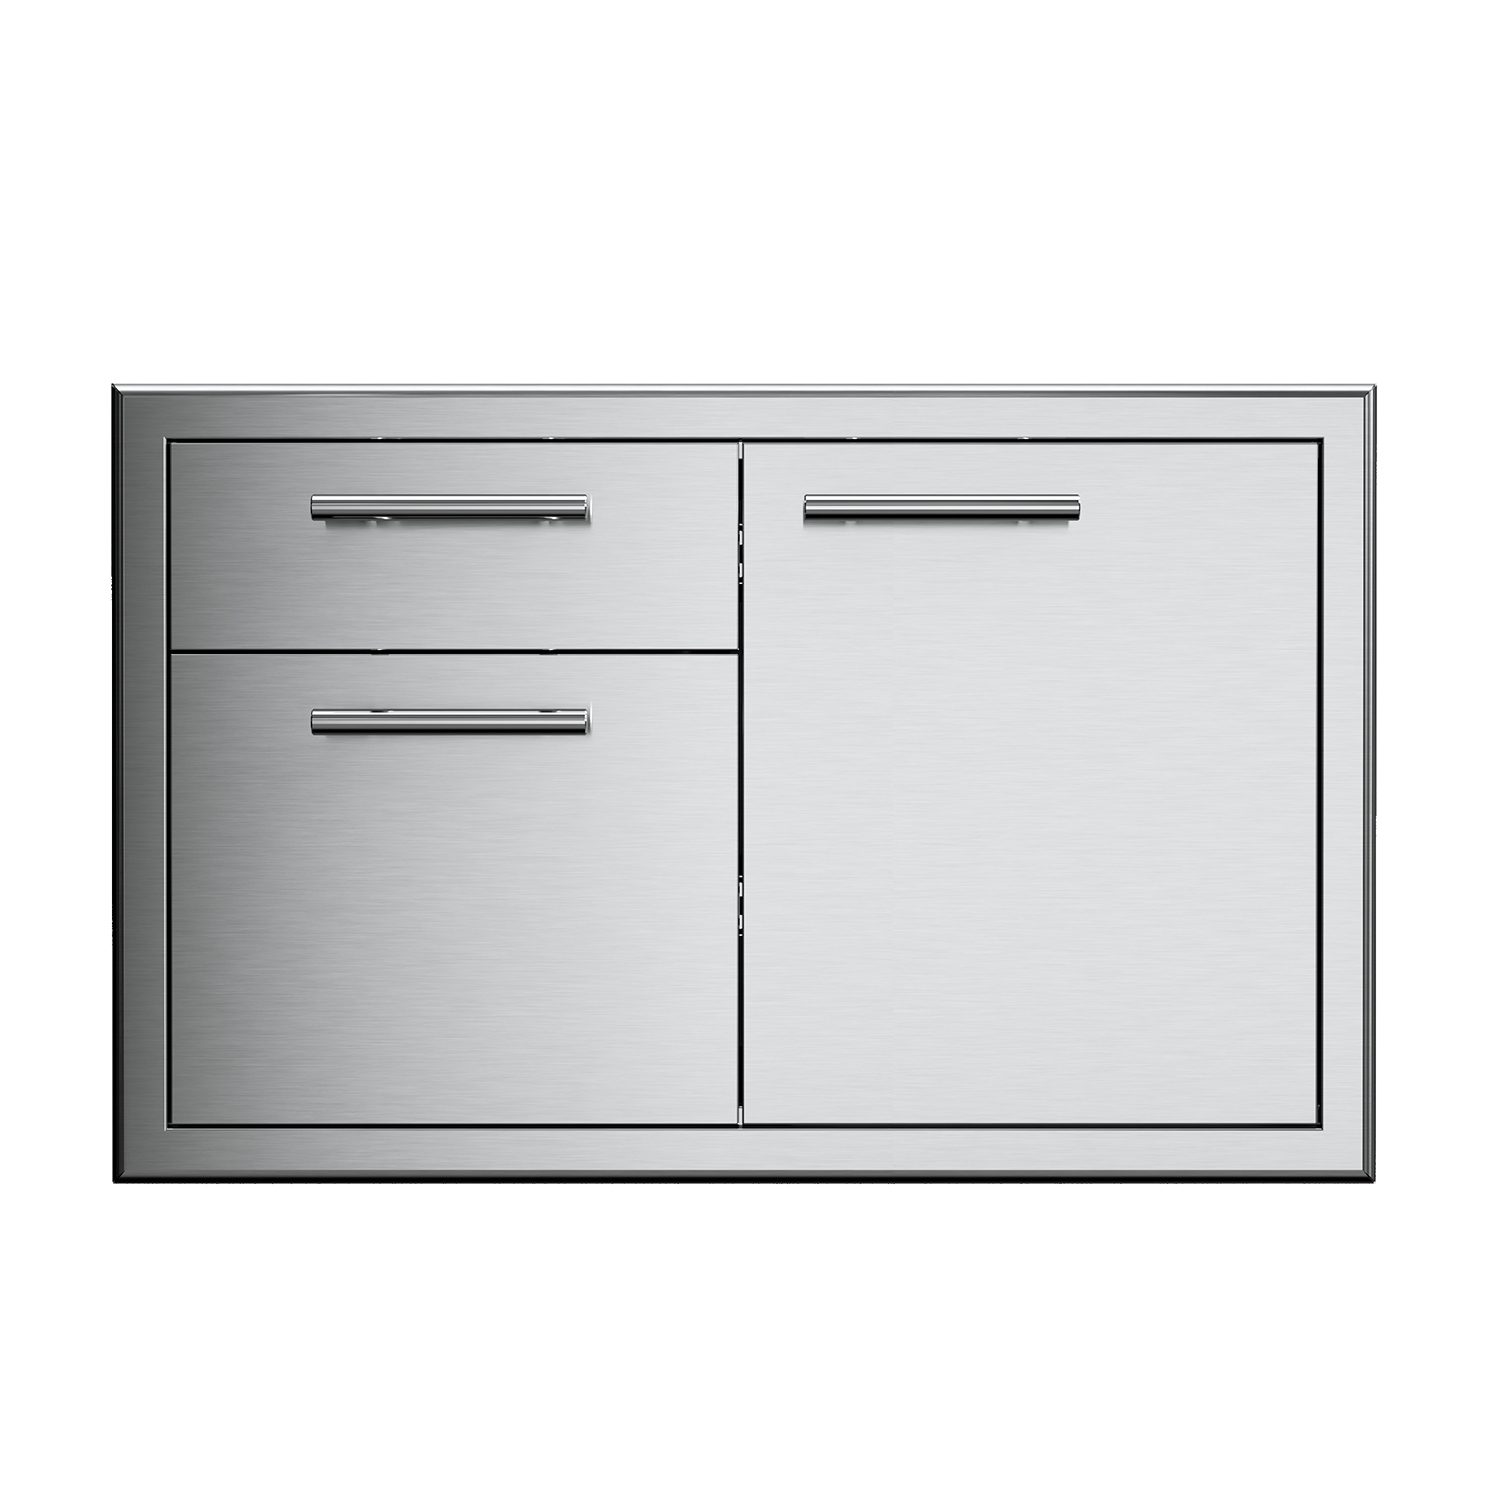 XO Ventilation 36 in Single Roll Out Door and Drawer Cabinet